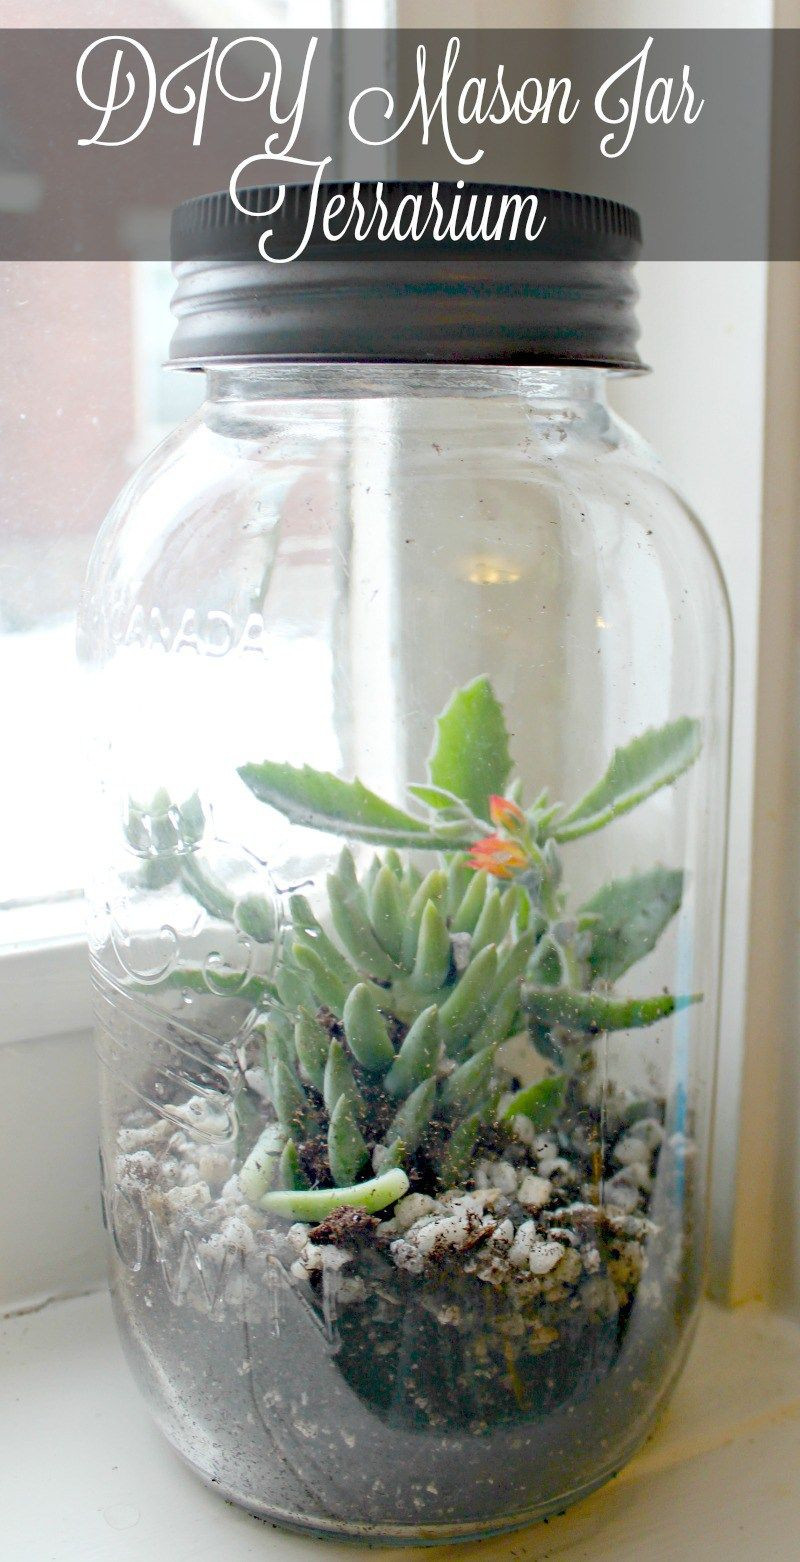 Glass Vase Terrarium Of Diy Mason Jar Terrarium Mason Jar Terrarium Terraria and Jar with Diy Mason Jar Terrarium Simple Idea to Add A Little Bit Of Life to Your Indoor Garden 12monthsofdiy Januarymasonjars